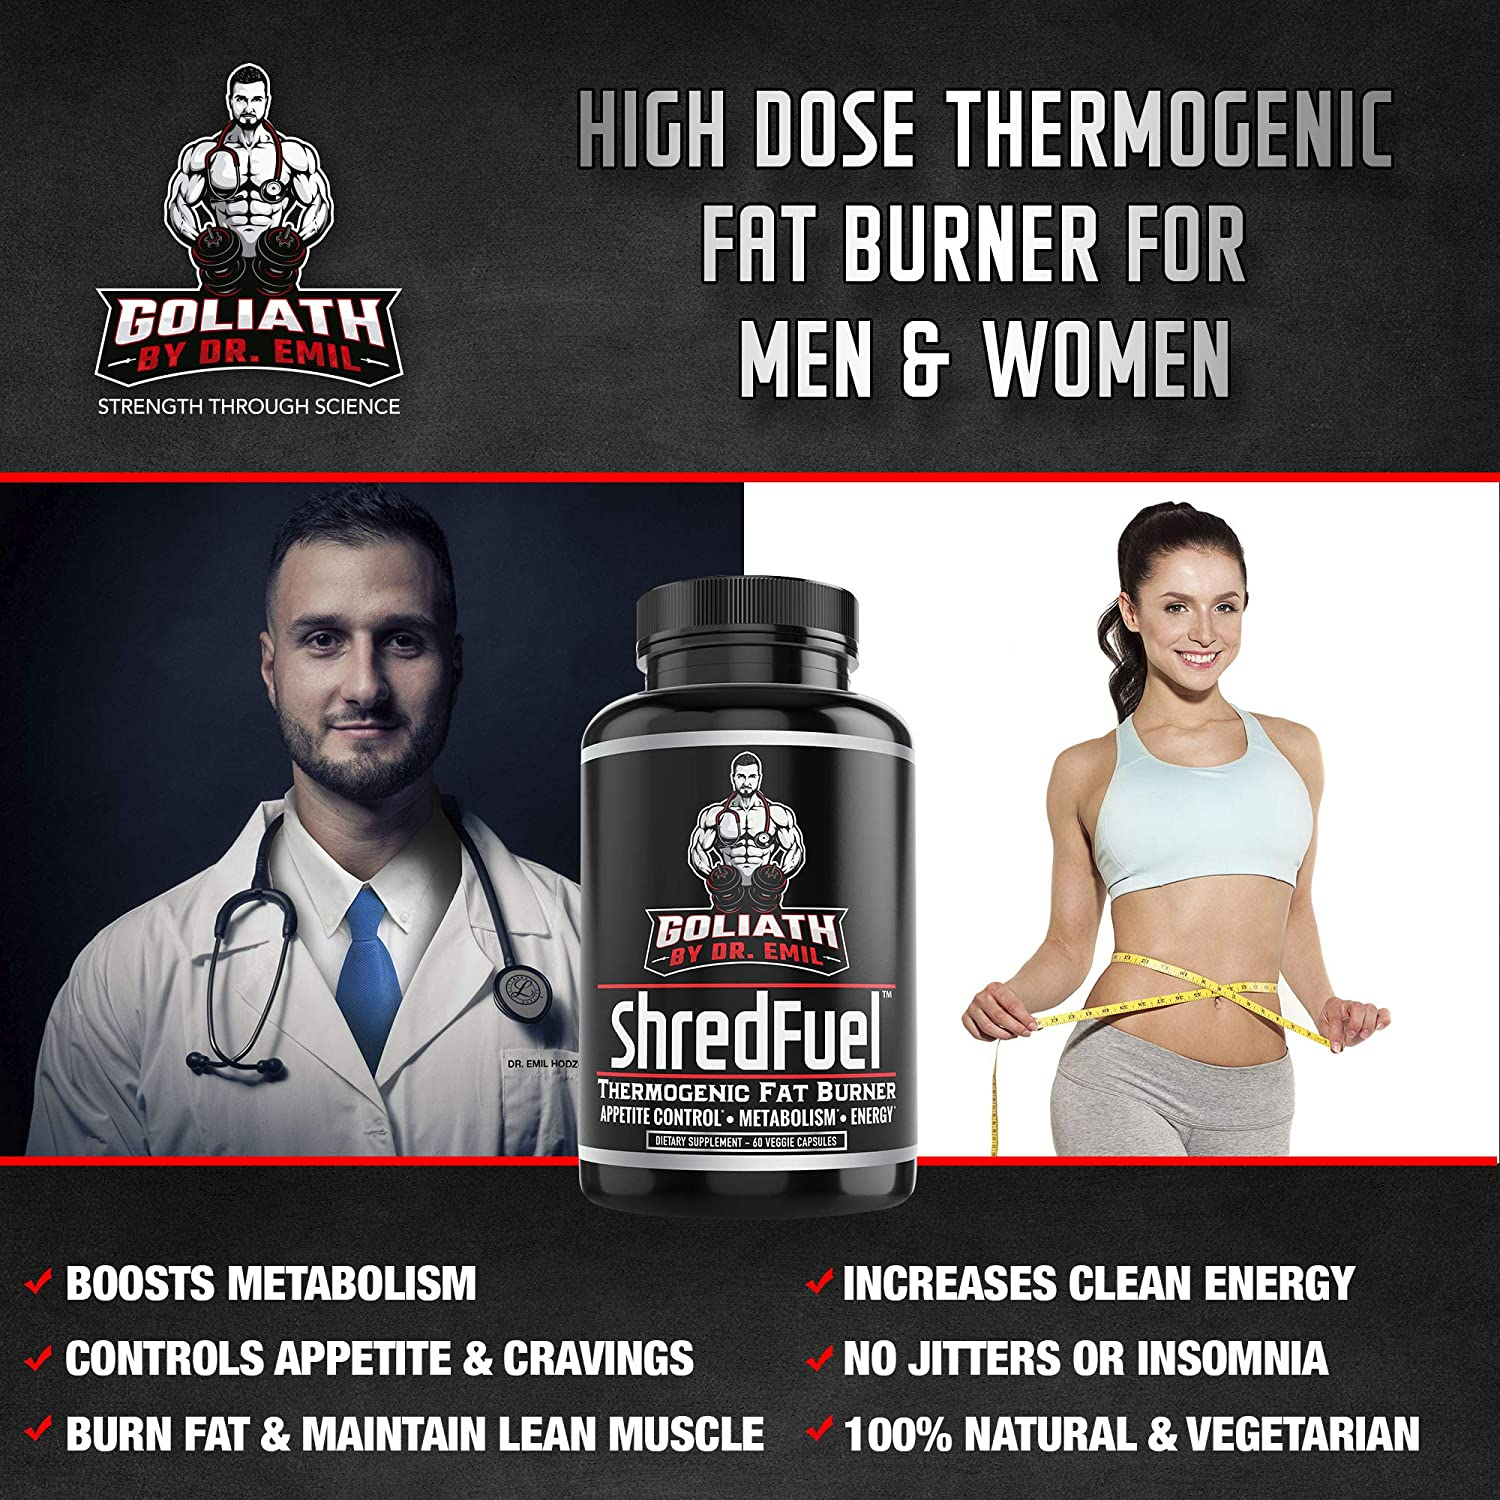 Dr. Emil - Thermogenic Fat Burner for Men and Women - High Dose Weight Loss Pills, Metabolism Booster and Appetite Suppressant (60 Vegan Diet Pills)